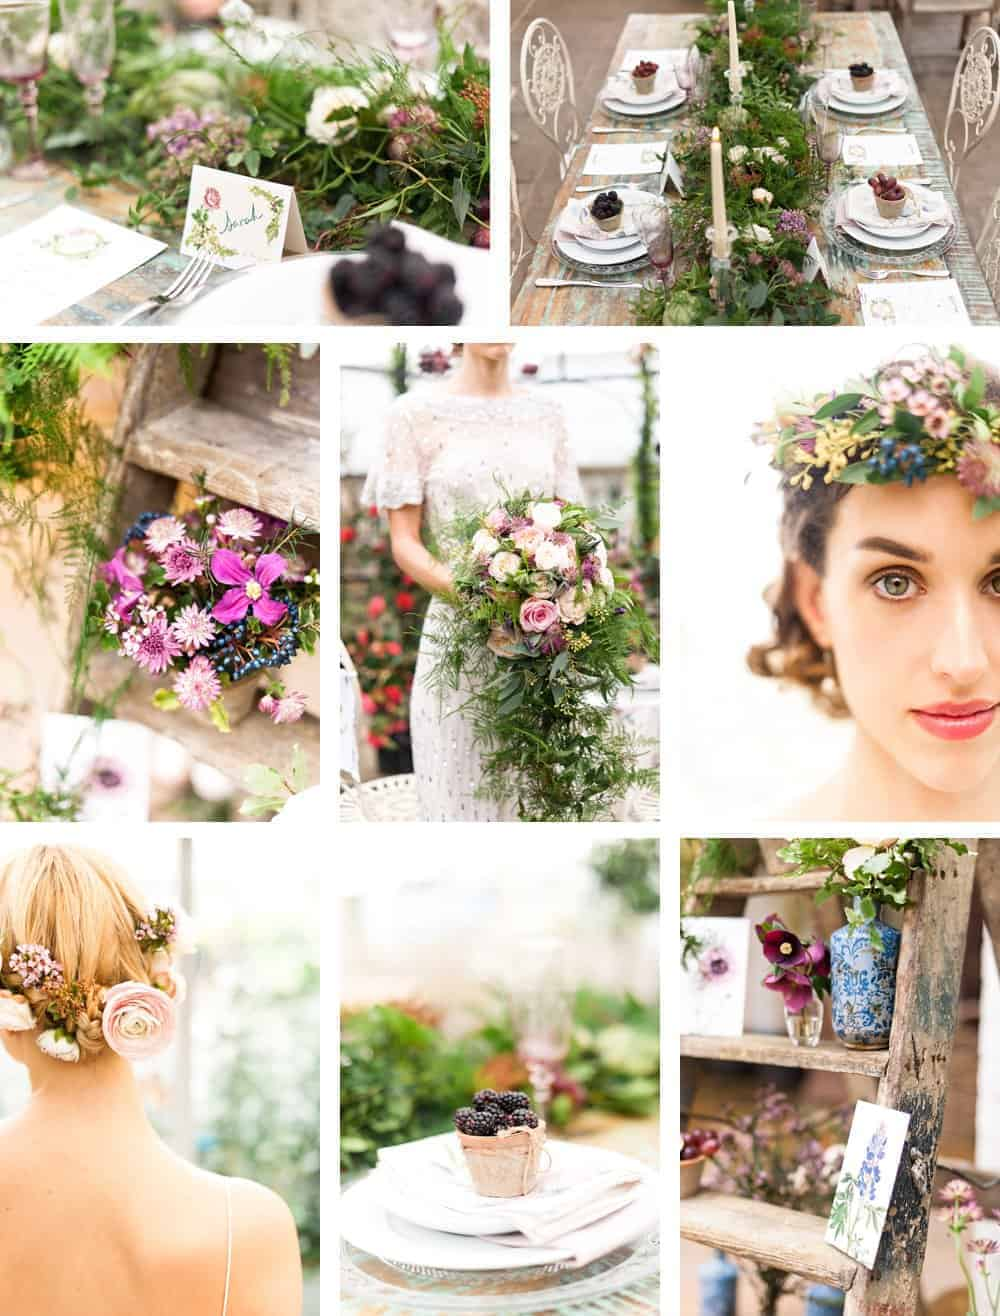 beautiful country botanical wedding flowers by Philippa Craddock at Clifton Nurseries. Click through for essential ideas and contacts for creating beautiful flowers for your own wedding